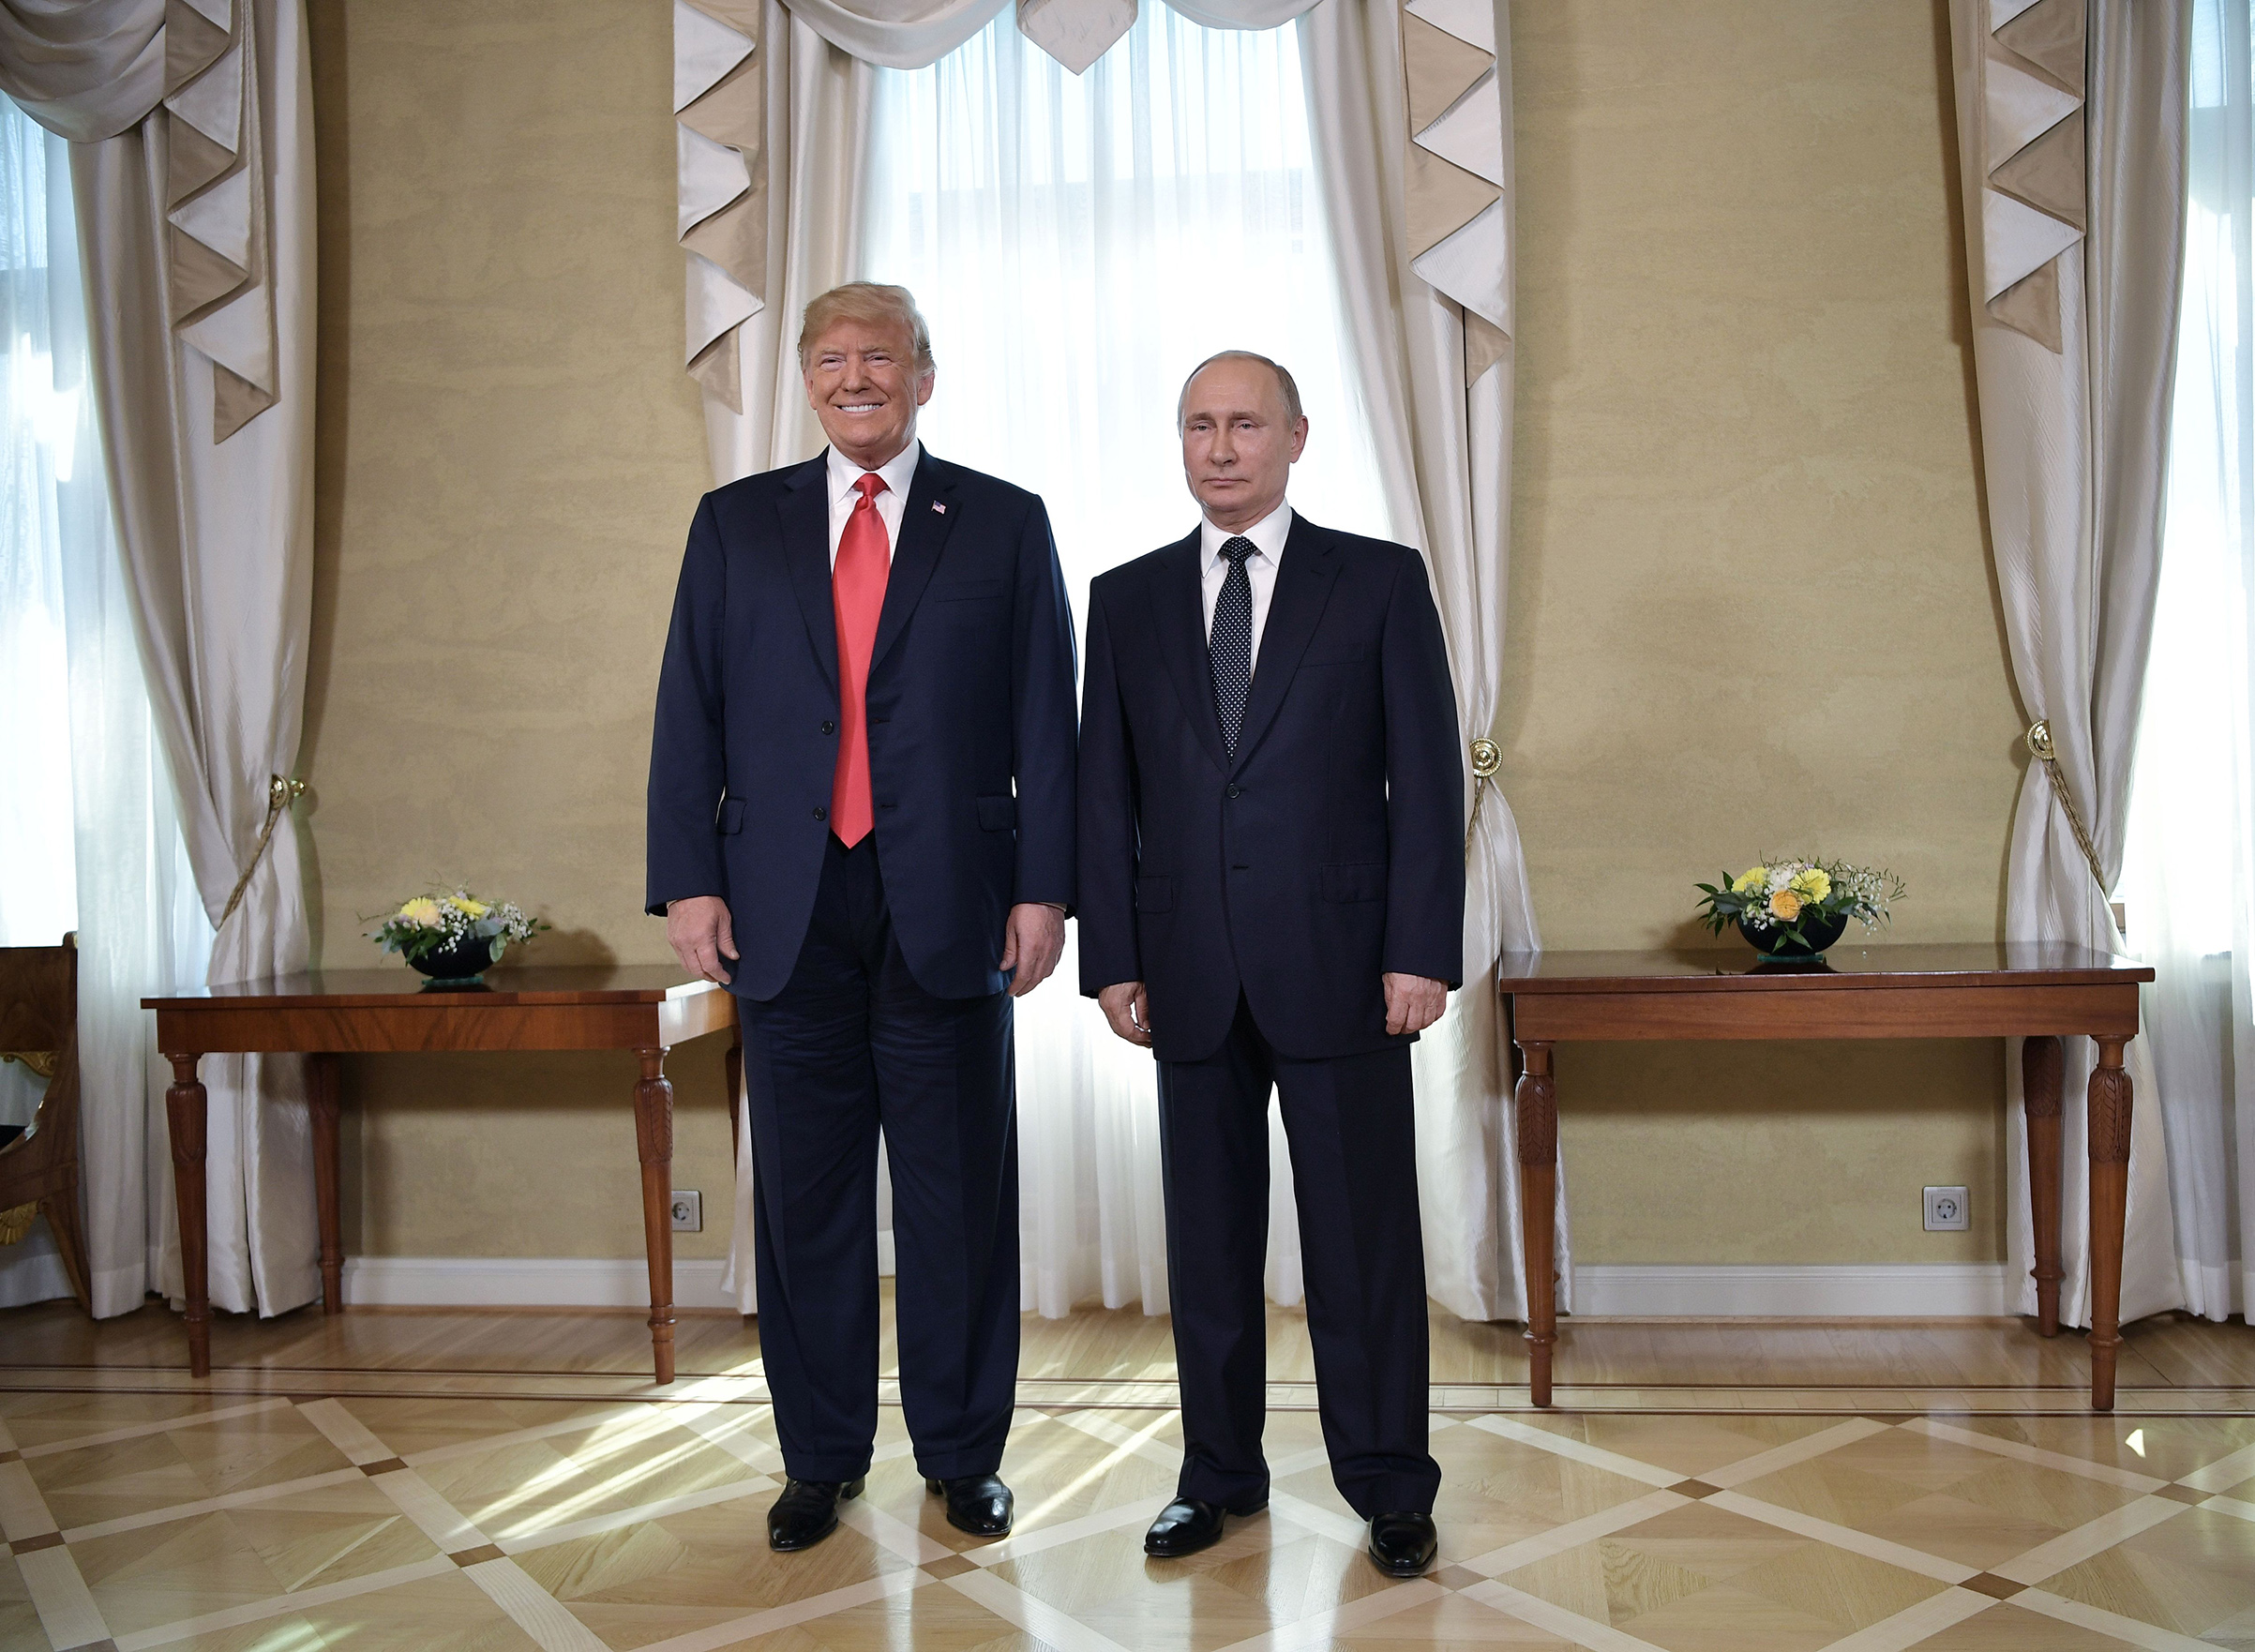 US President Donald Trump and Russia's President Vladimir Putin pose ahead a meeting in Helsinki, on July 16, 2018.